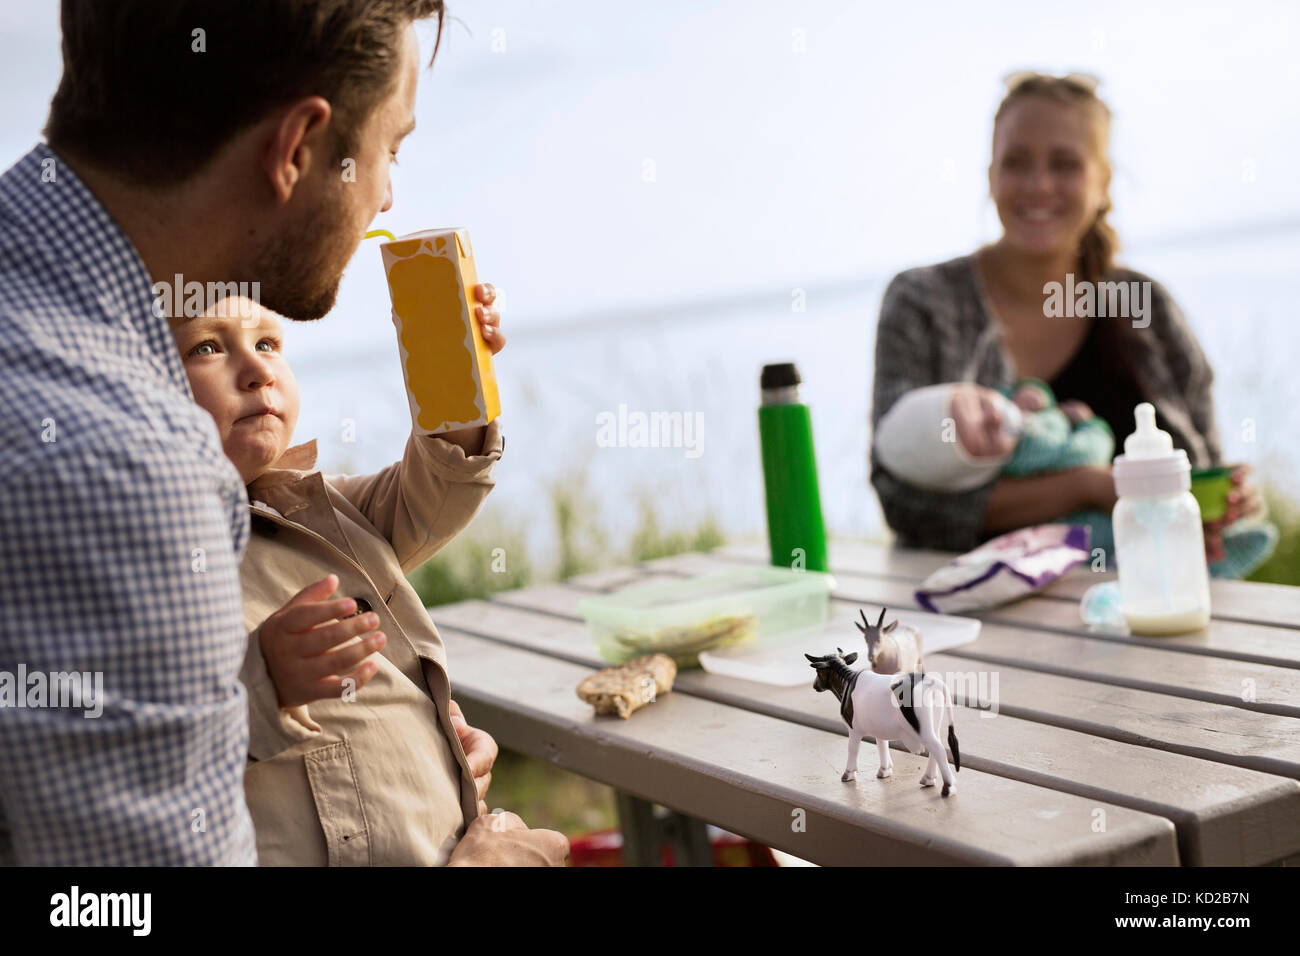 Father sitting with son (18-23 months) by picnic table - Stock Image